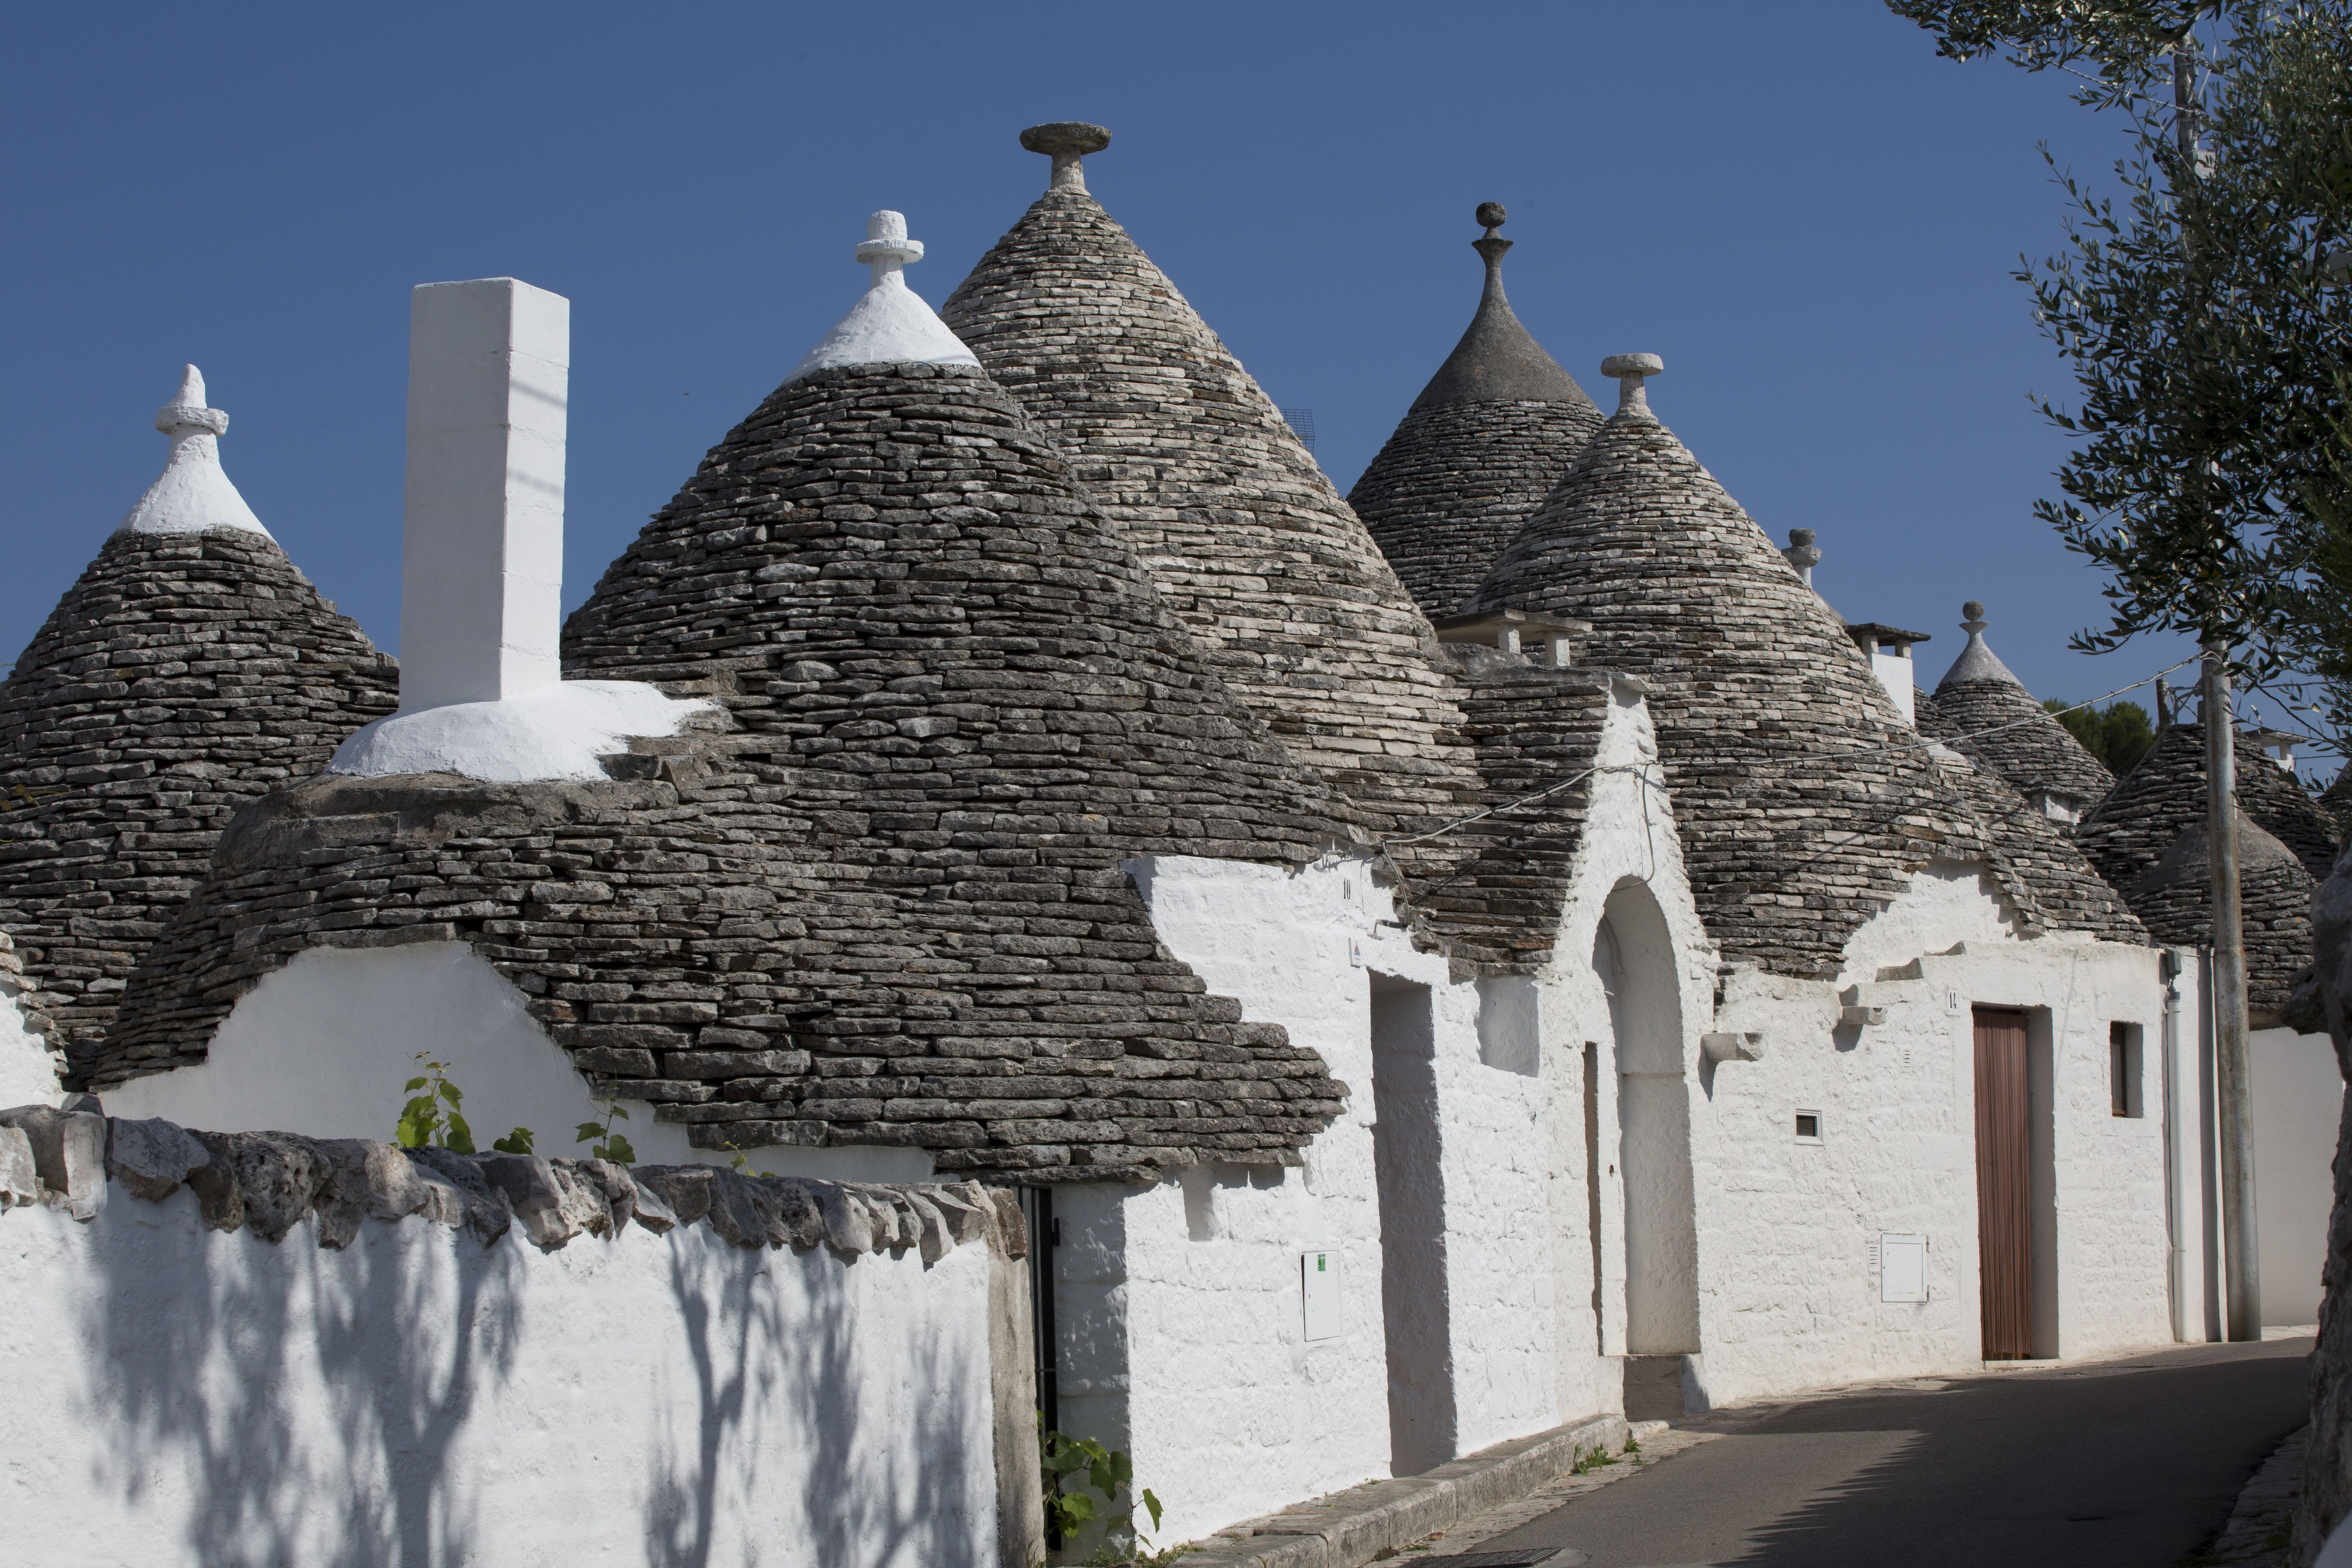 conical stone corbelled Trulli roofs on white houses along a narrow street